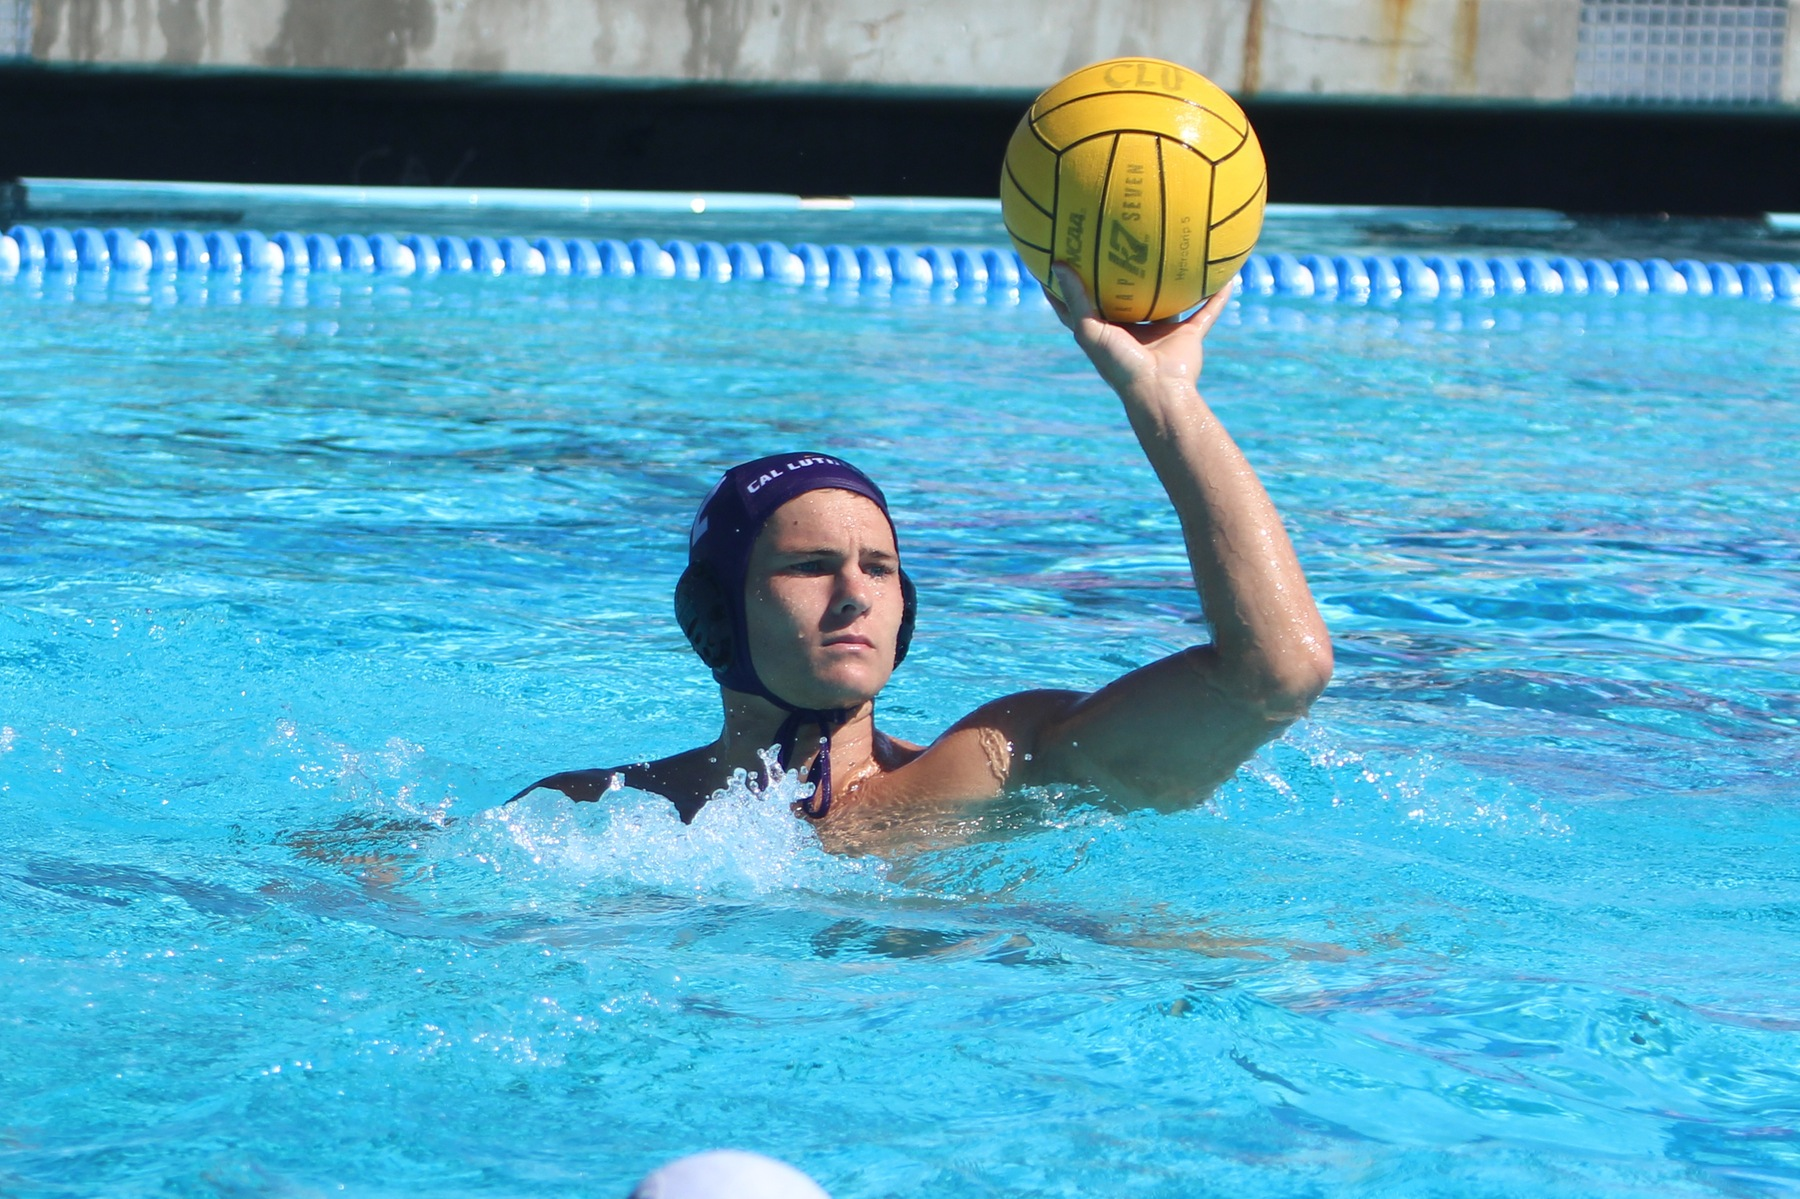 Justin Krause (pictured) and Ben Brown both scored a hat trick to lead CLU past ULV 11-7. (Photo :Claire Caldera)